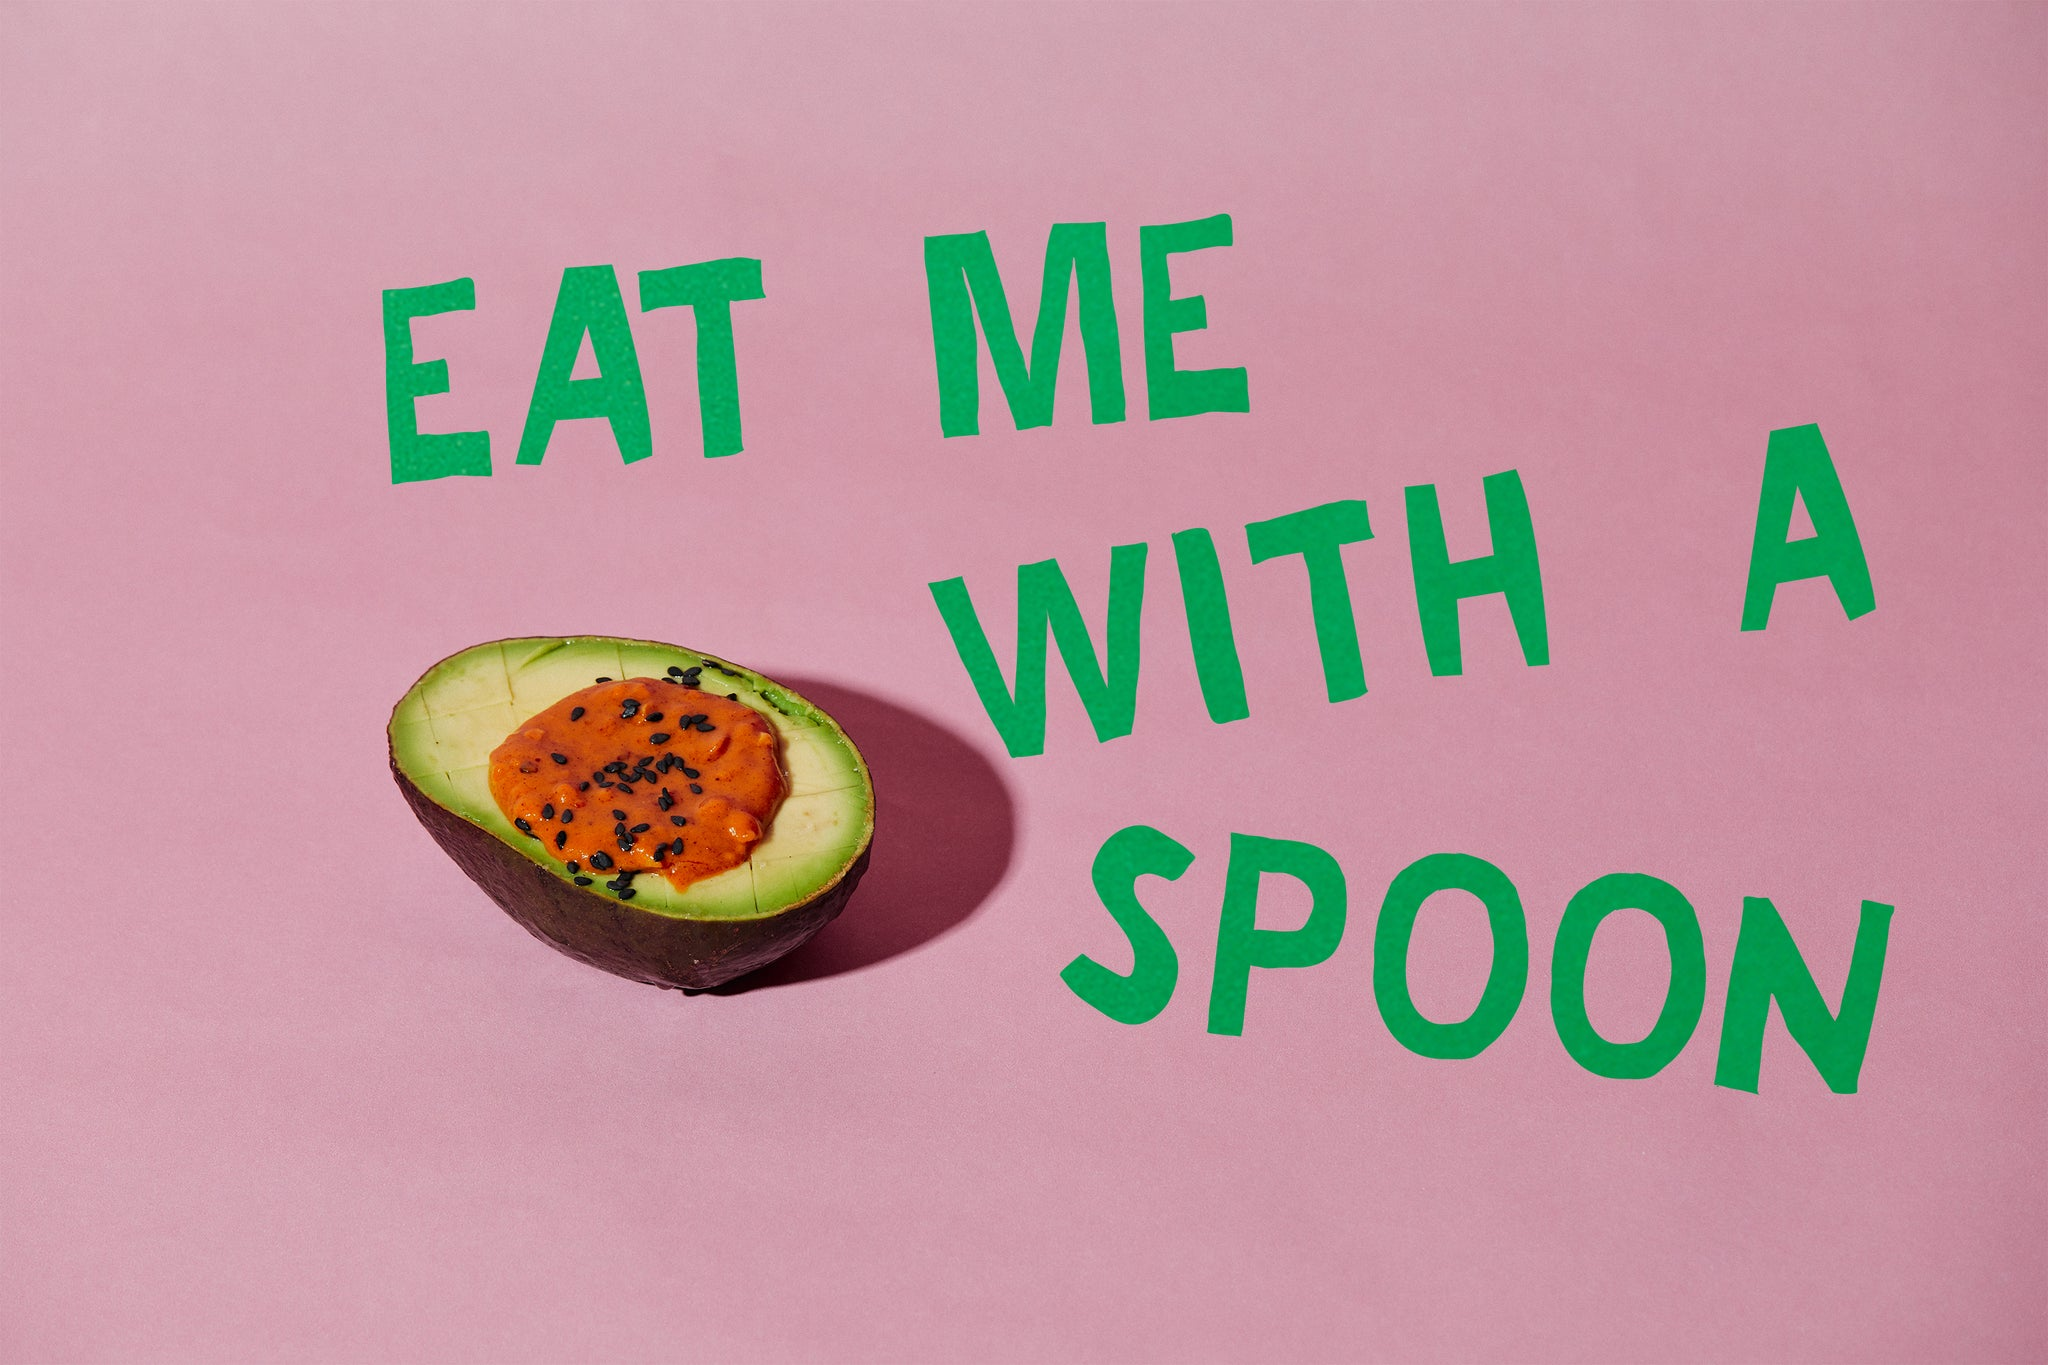 Eat me with a spoon